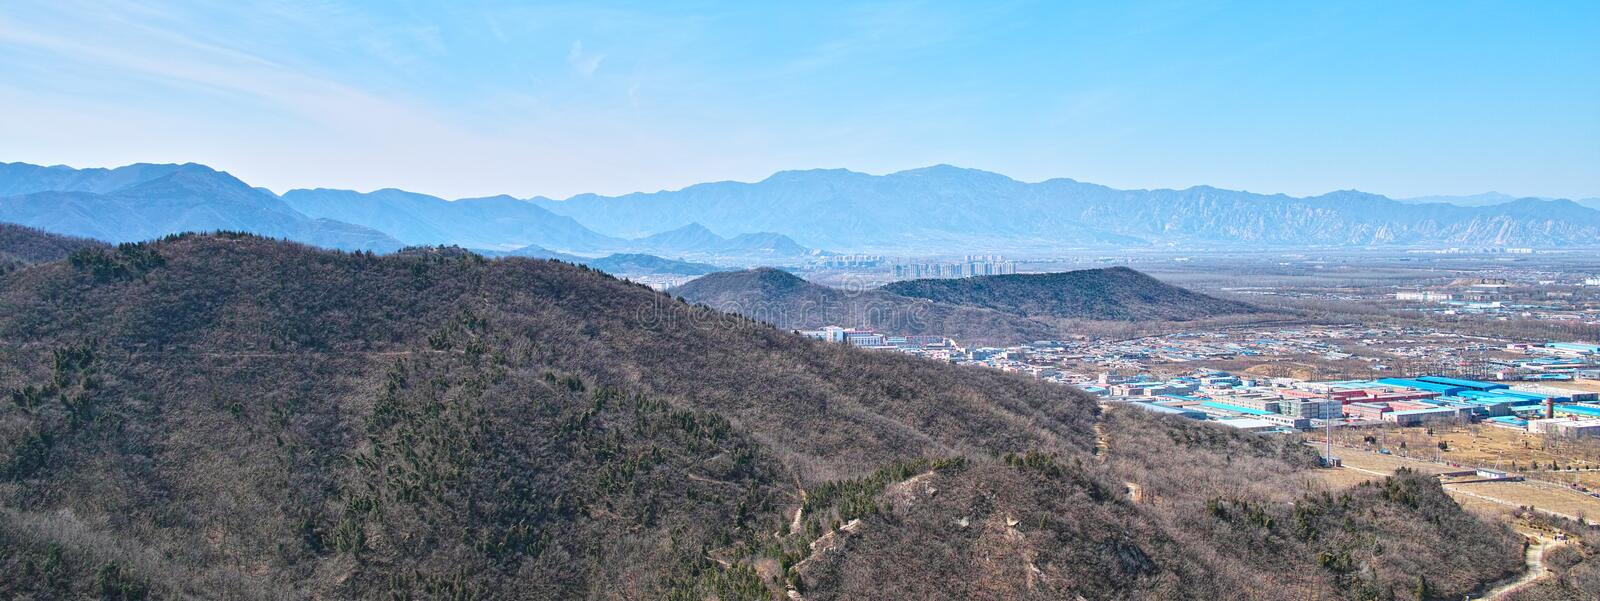 Download The Town And Mountains From Beijing Baiwangshan Peak Editorial Image - Image: 30937940